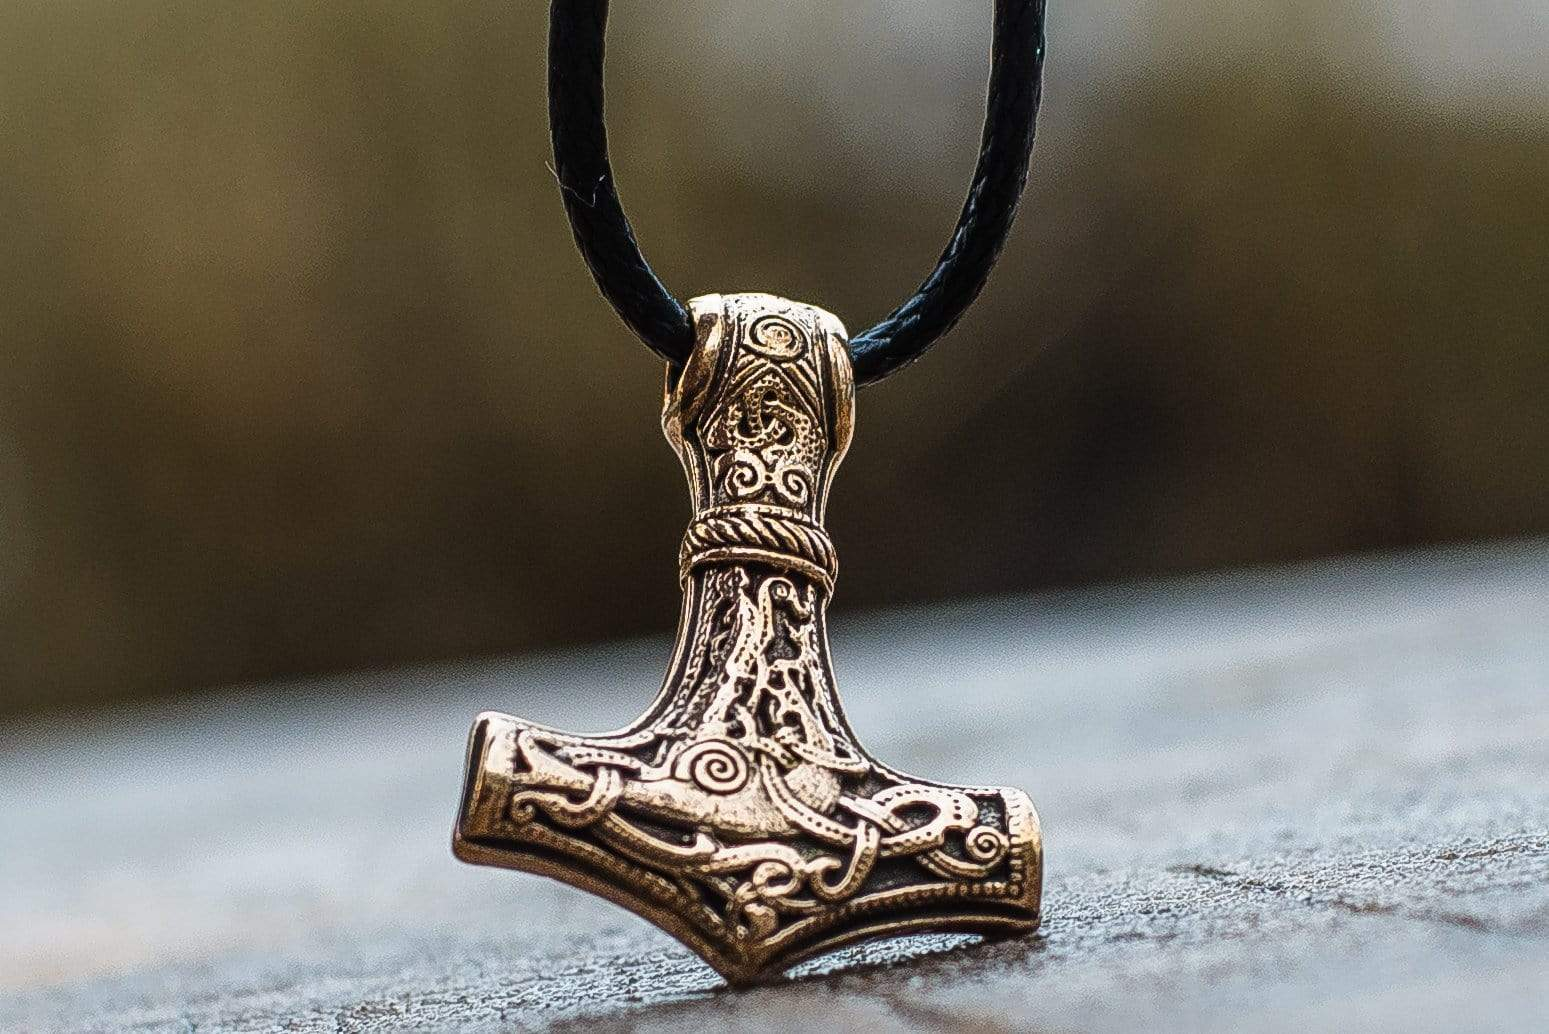 Ancient Smithy VW jewelry Thor's Hammer Pendant Bronze Mjolnir from Mammen Village